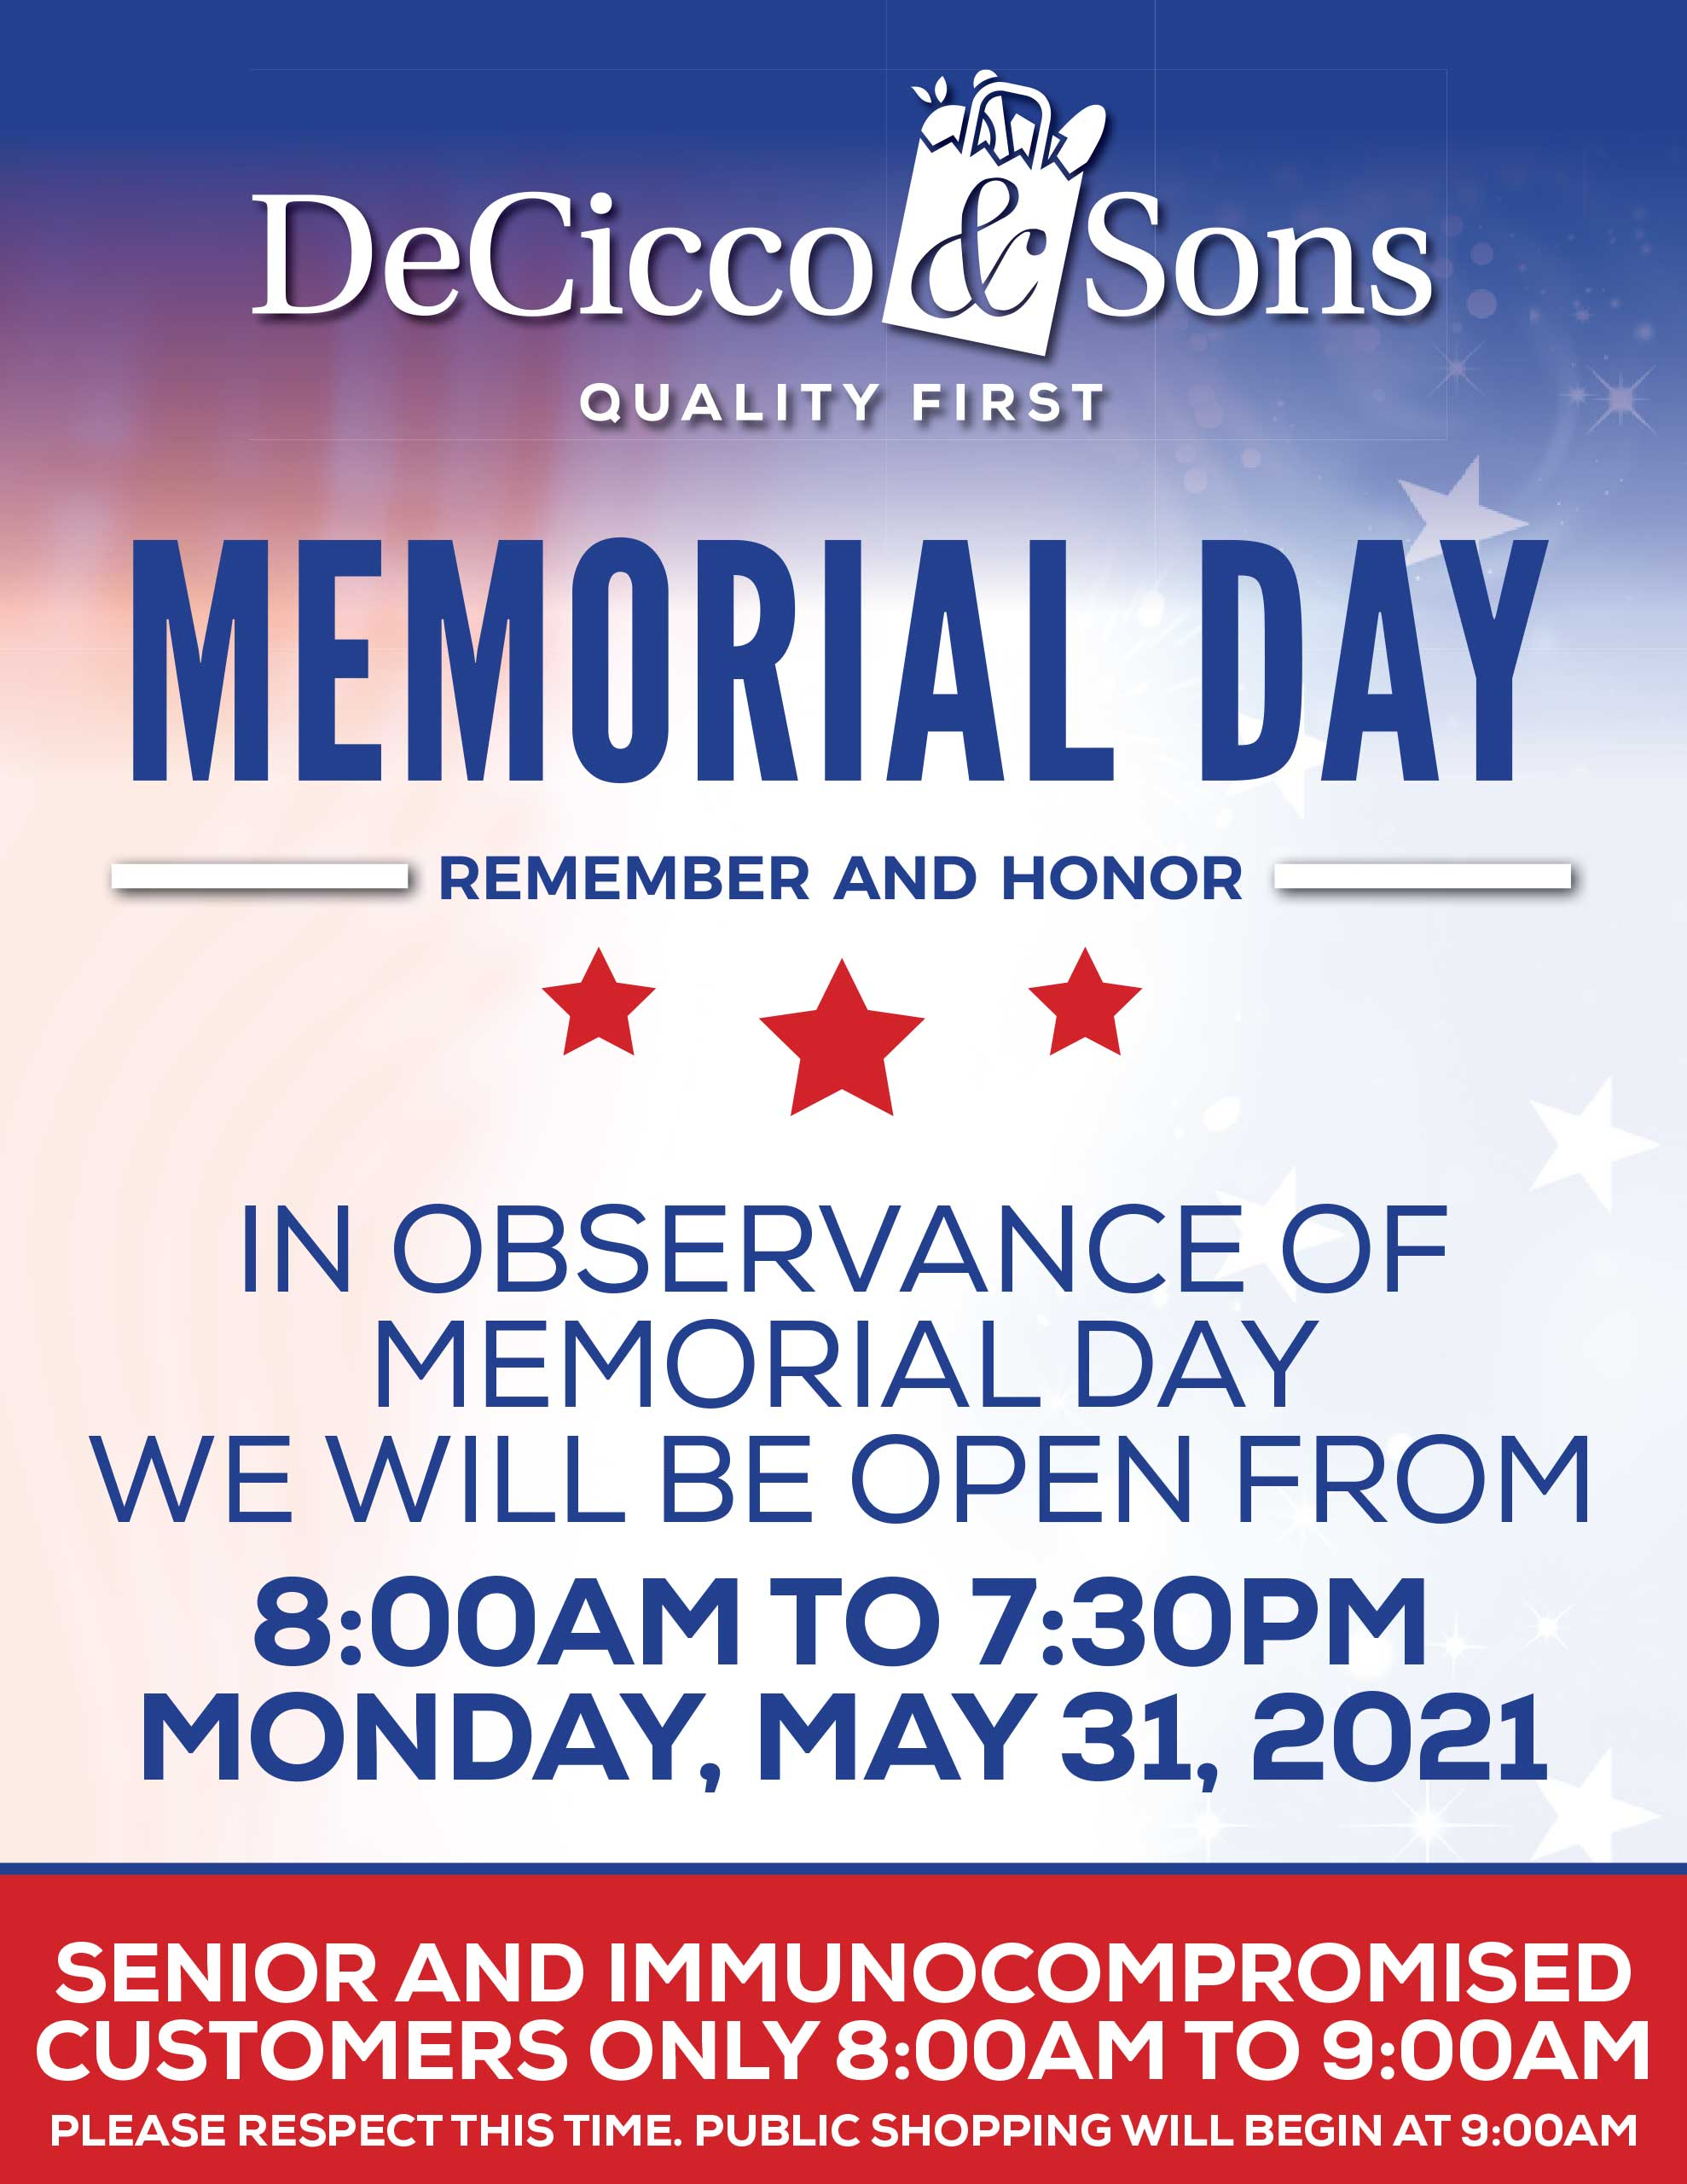 Memorial Day Brewster Hours - open from 8:00am to 7:30pm